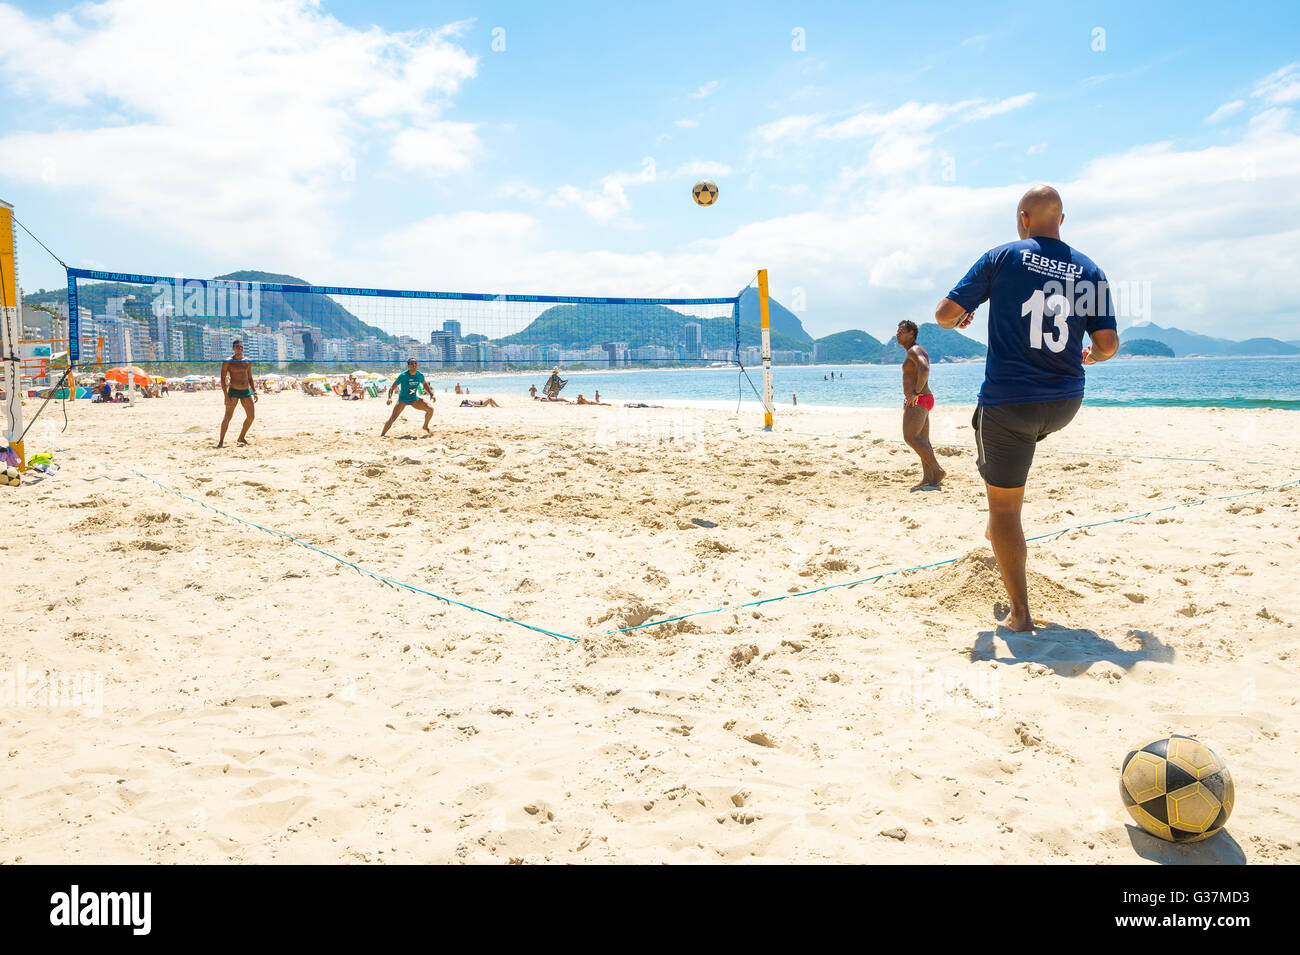 RIO DE JANEIRO - le 15 mars 2016 : Brazilian men jouer futevôlei (footvolley, combinant football et volley Photo Stock